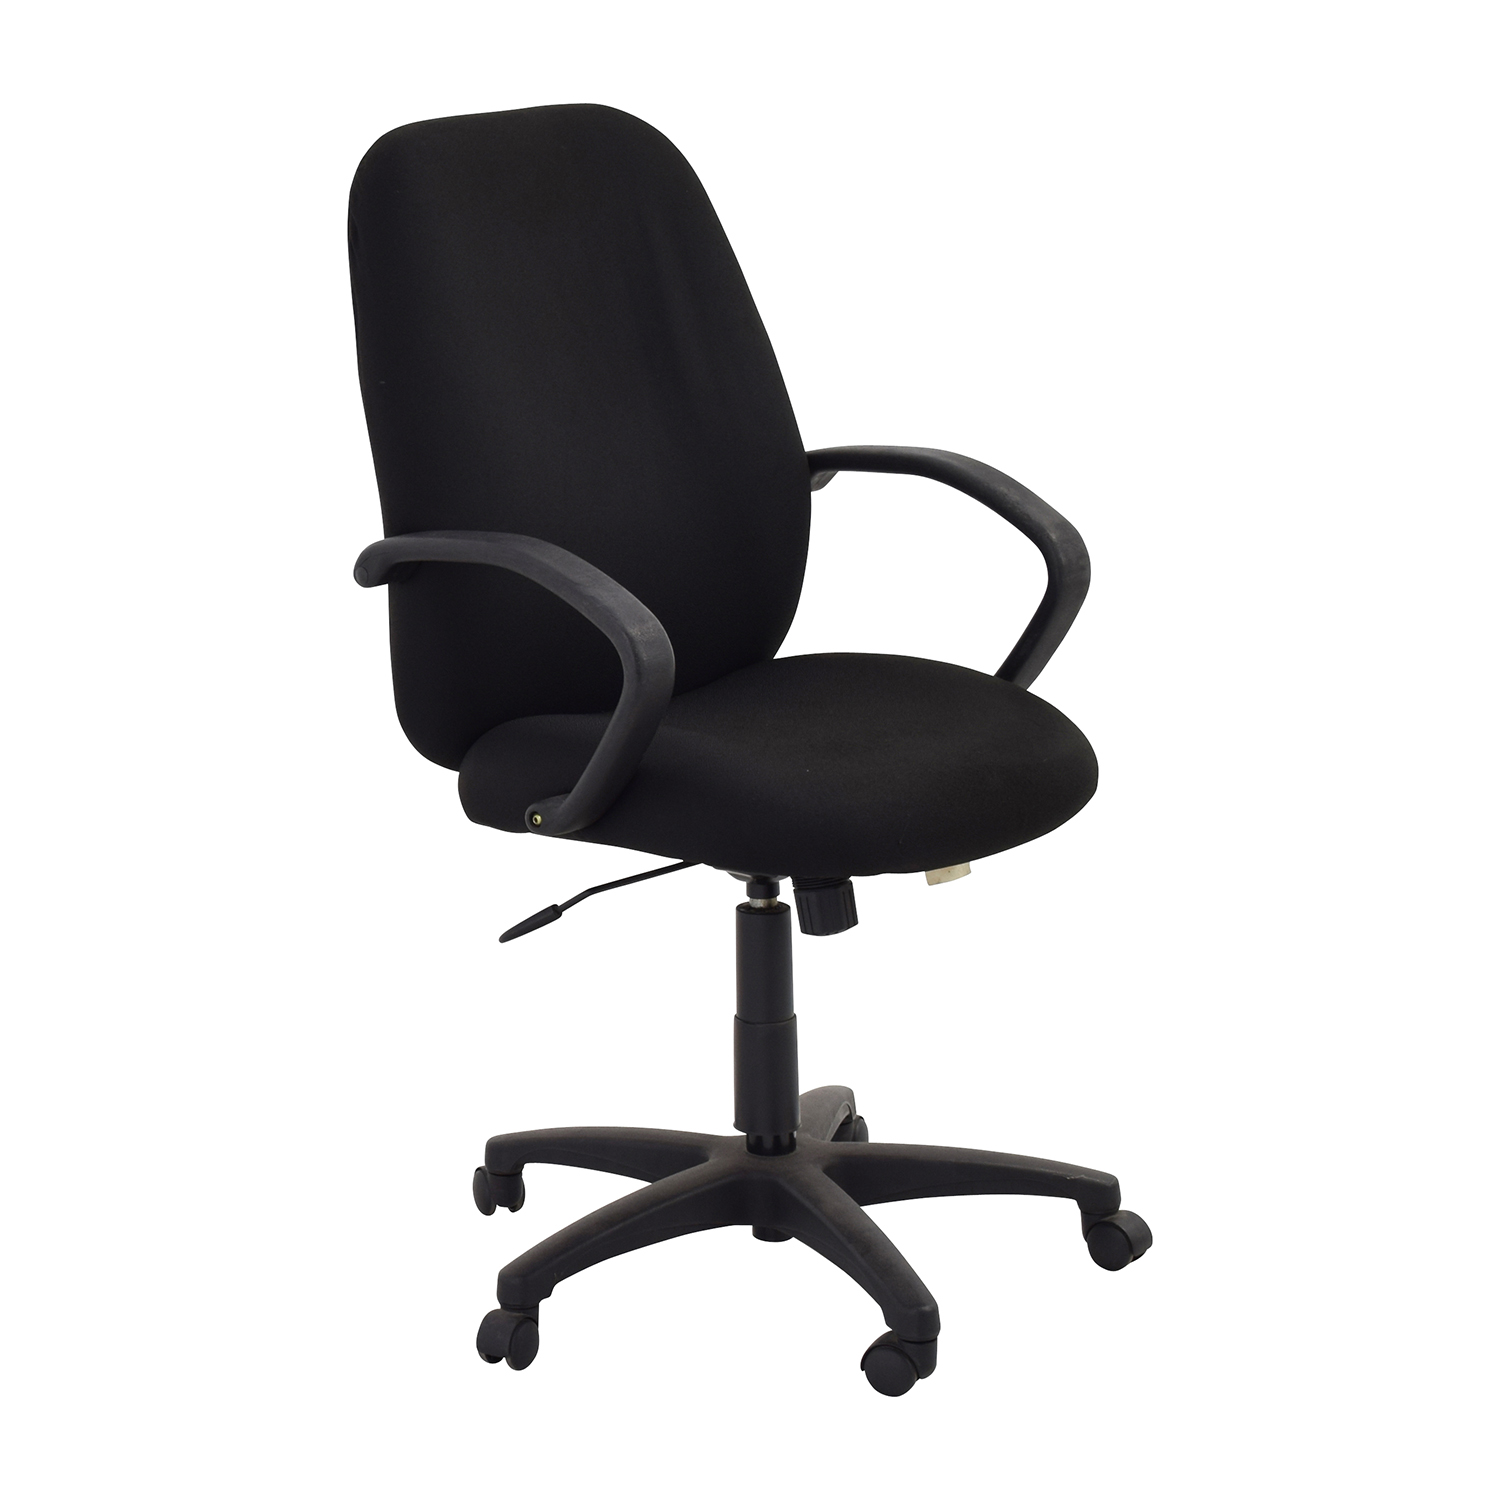 Furniture Chairs Black 80 Off Black Swivel Office Chair Chairs